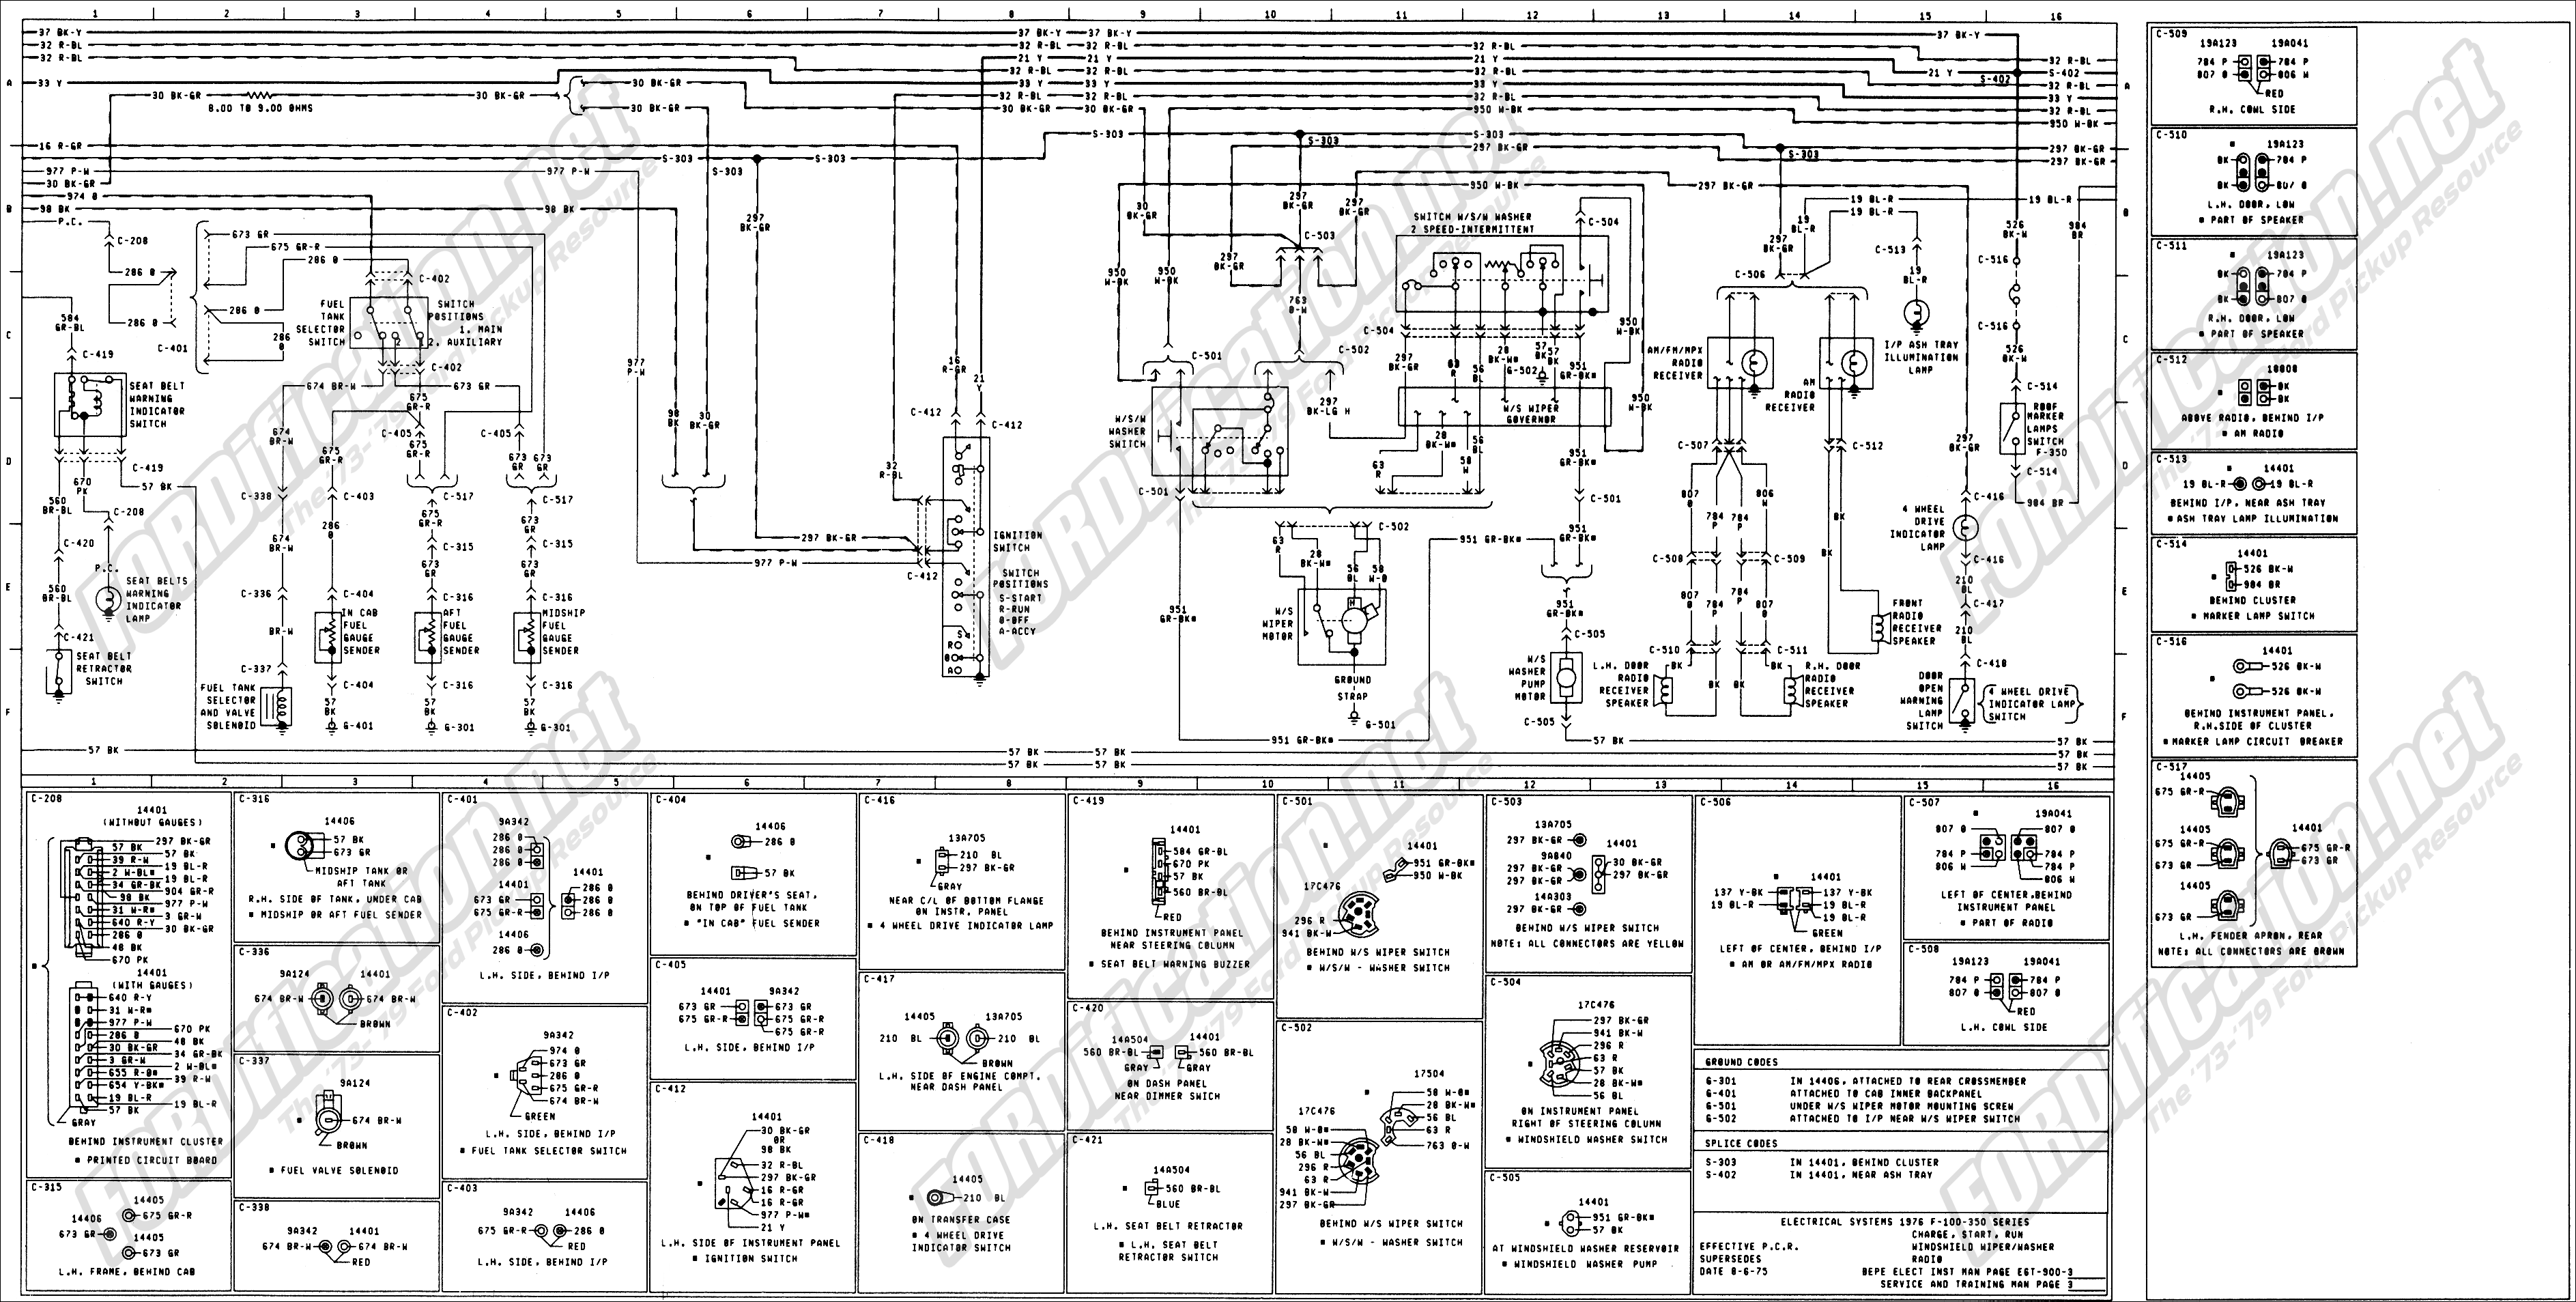 1973 Mustang Fuse Box Diagram Another Blog About Wiring Vw Beetle 77 Ford F250 Schematic Rh Theodocle Fion Com